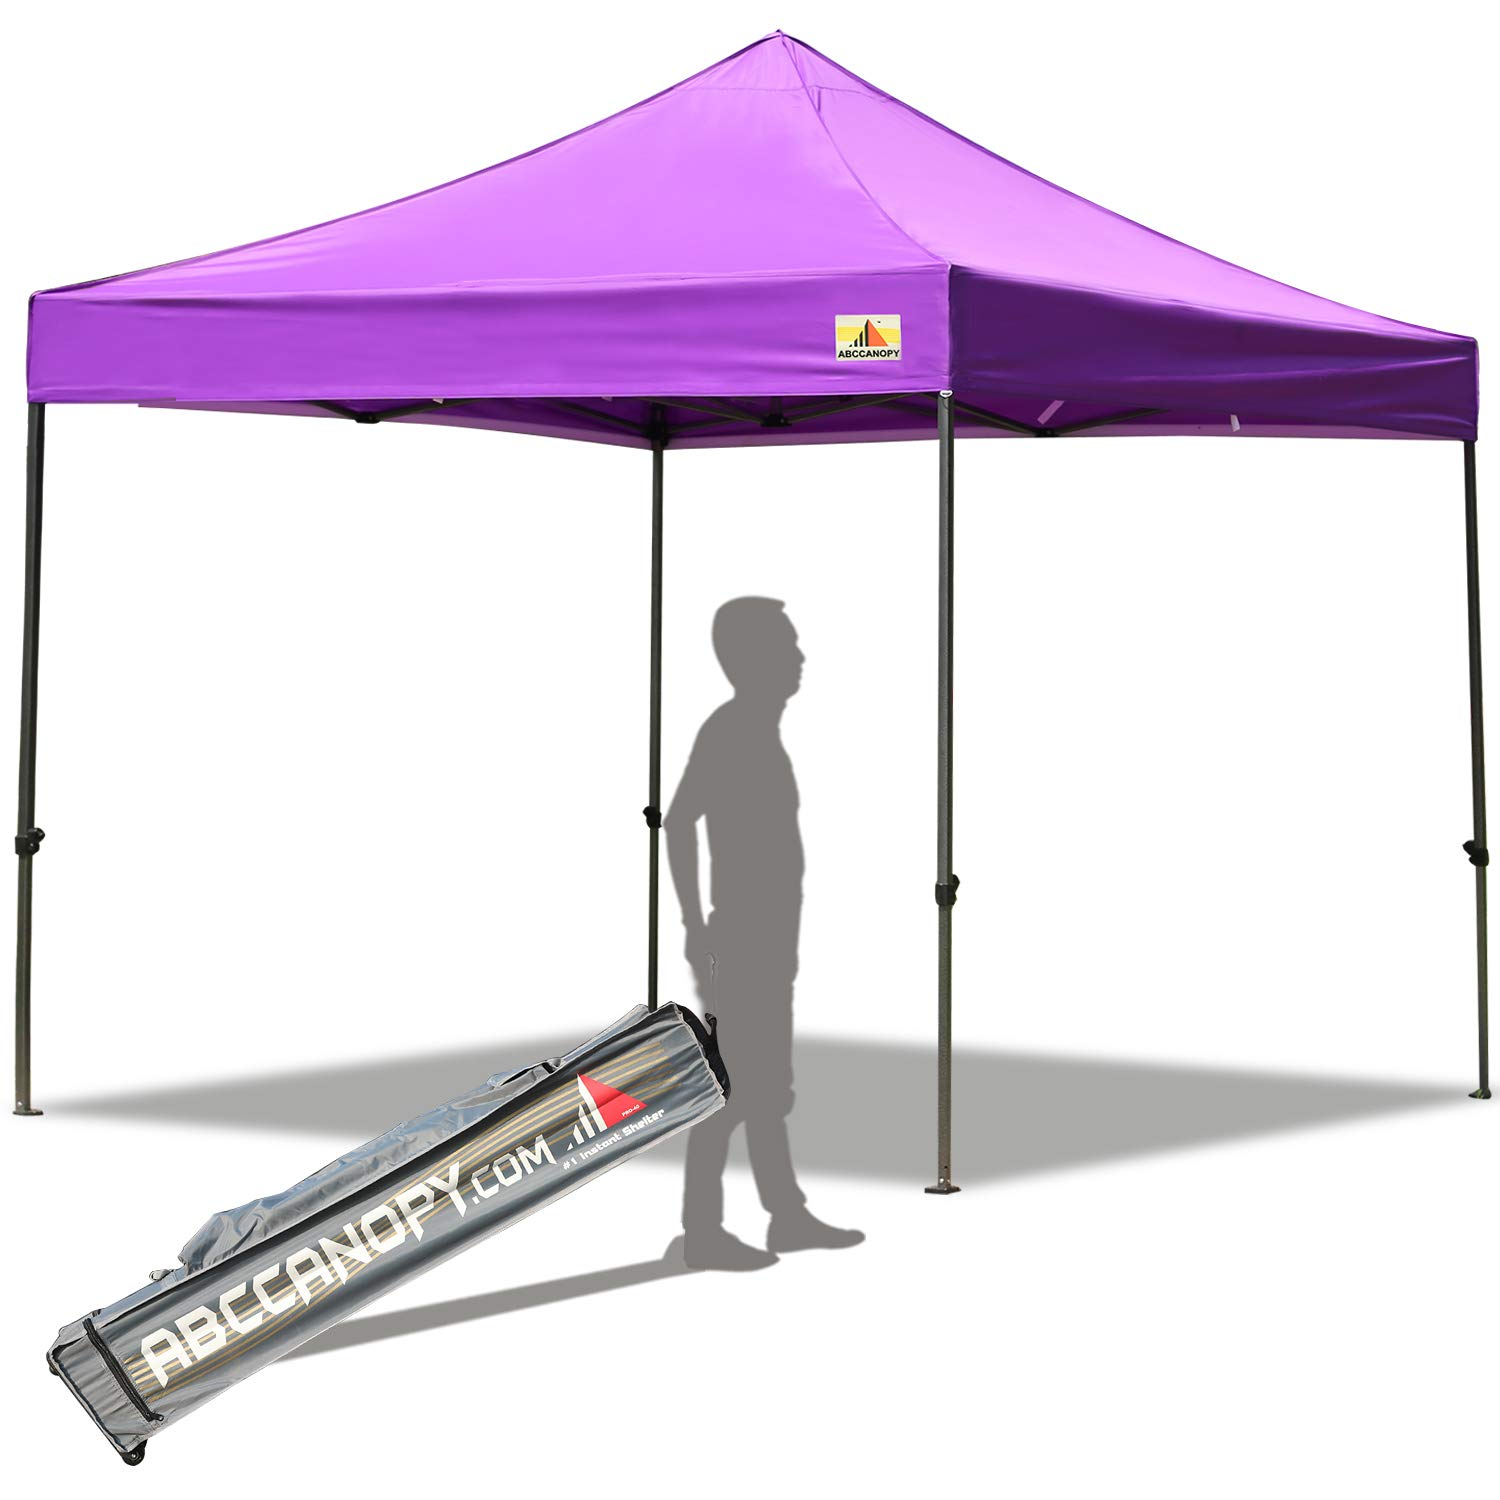 ABCCANOPY Pop up Canopy Tent Commercial Instant Shelter with Wheeled Carry Bag, 10x10 FT Purple